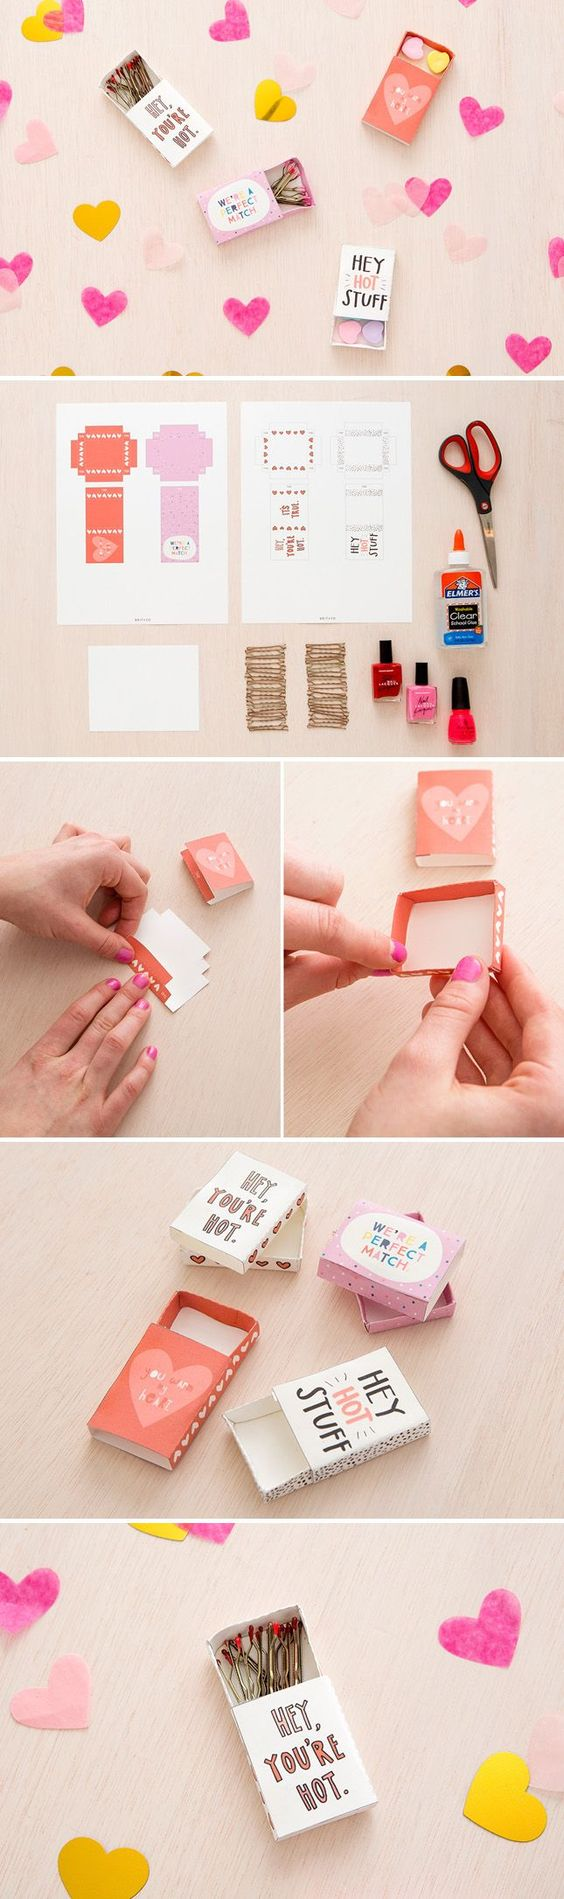 Learn how to make DIY Matchbox Valentines gift boxes with this fun tutorial and FREE PRINTABLES via Brit + Co #valentines #freeprintablevalentines #valentinesprintables #freevalentinesdaycards #valentinesdaypartyprintables #valentinesdayparty